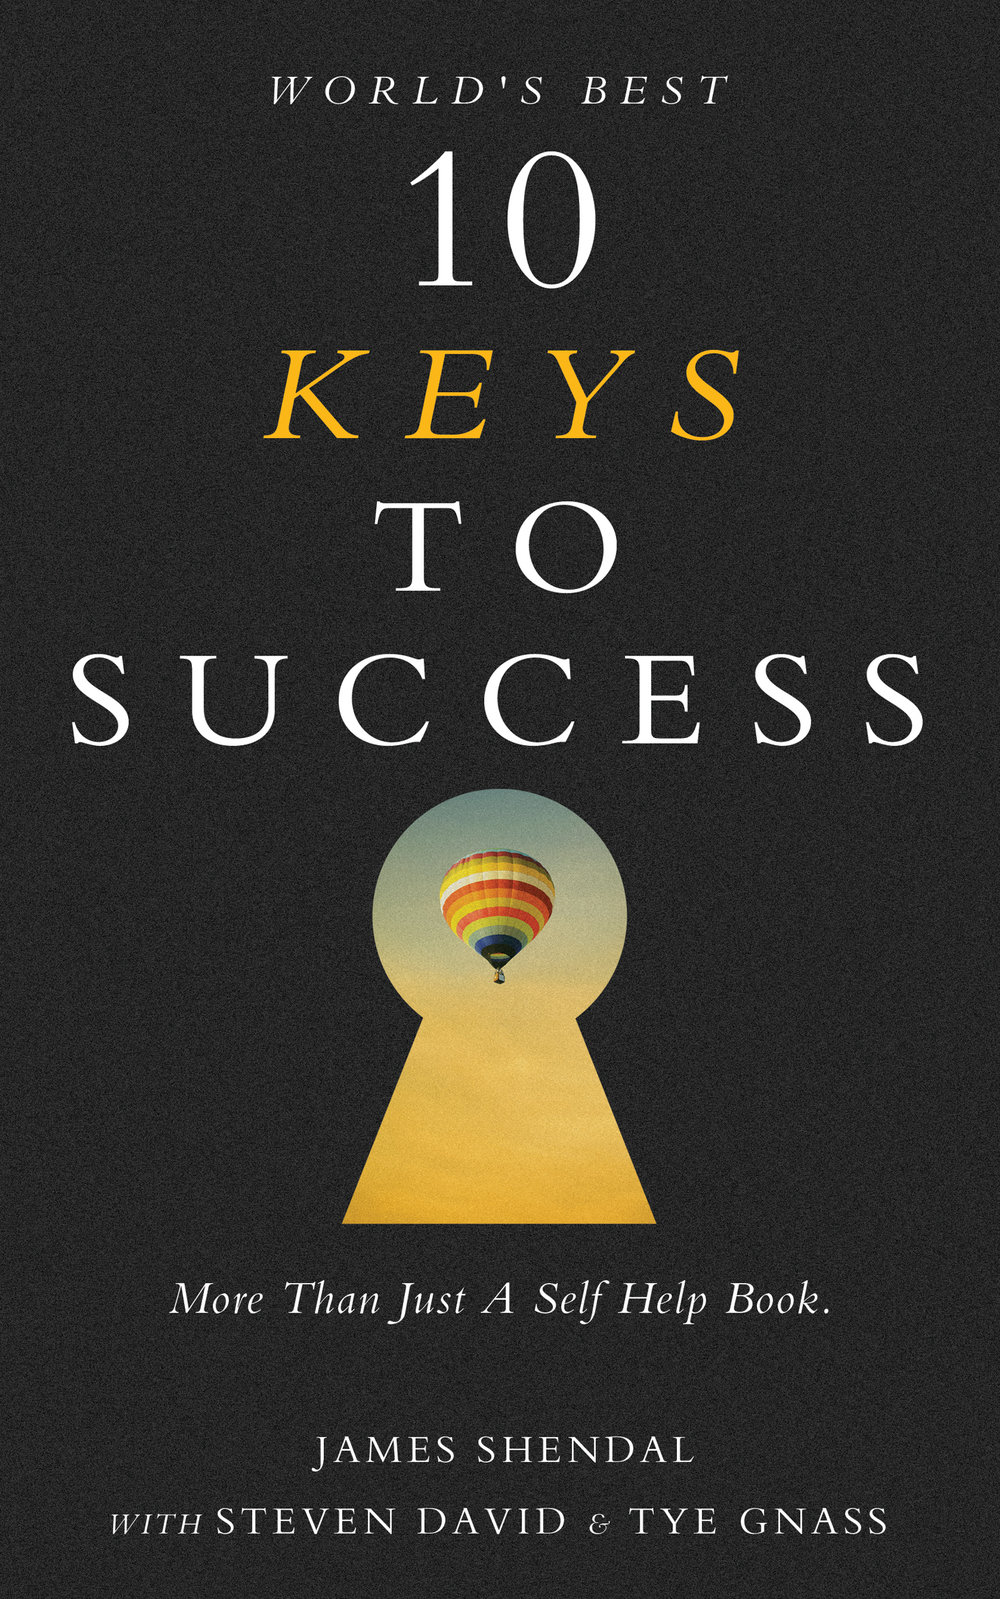 10 keys to success book cover